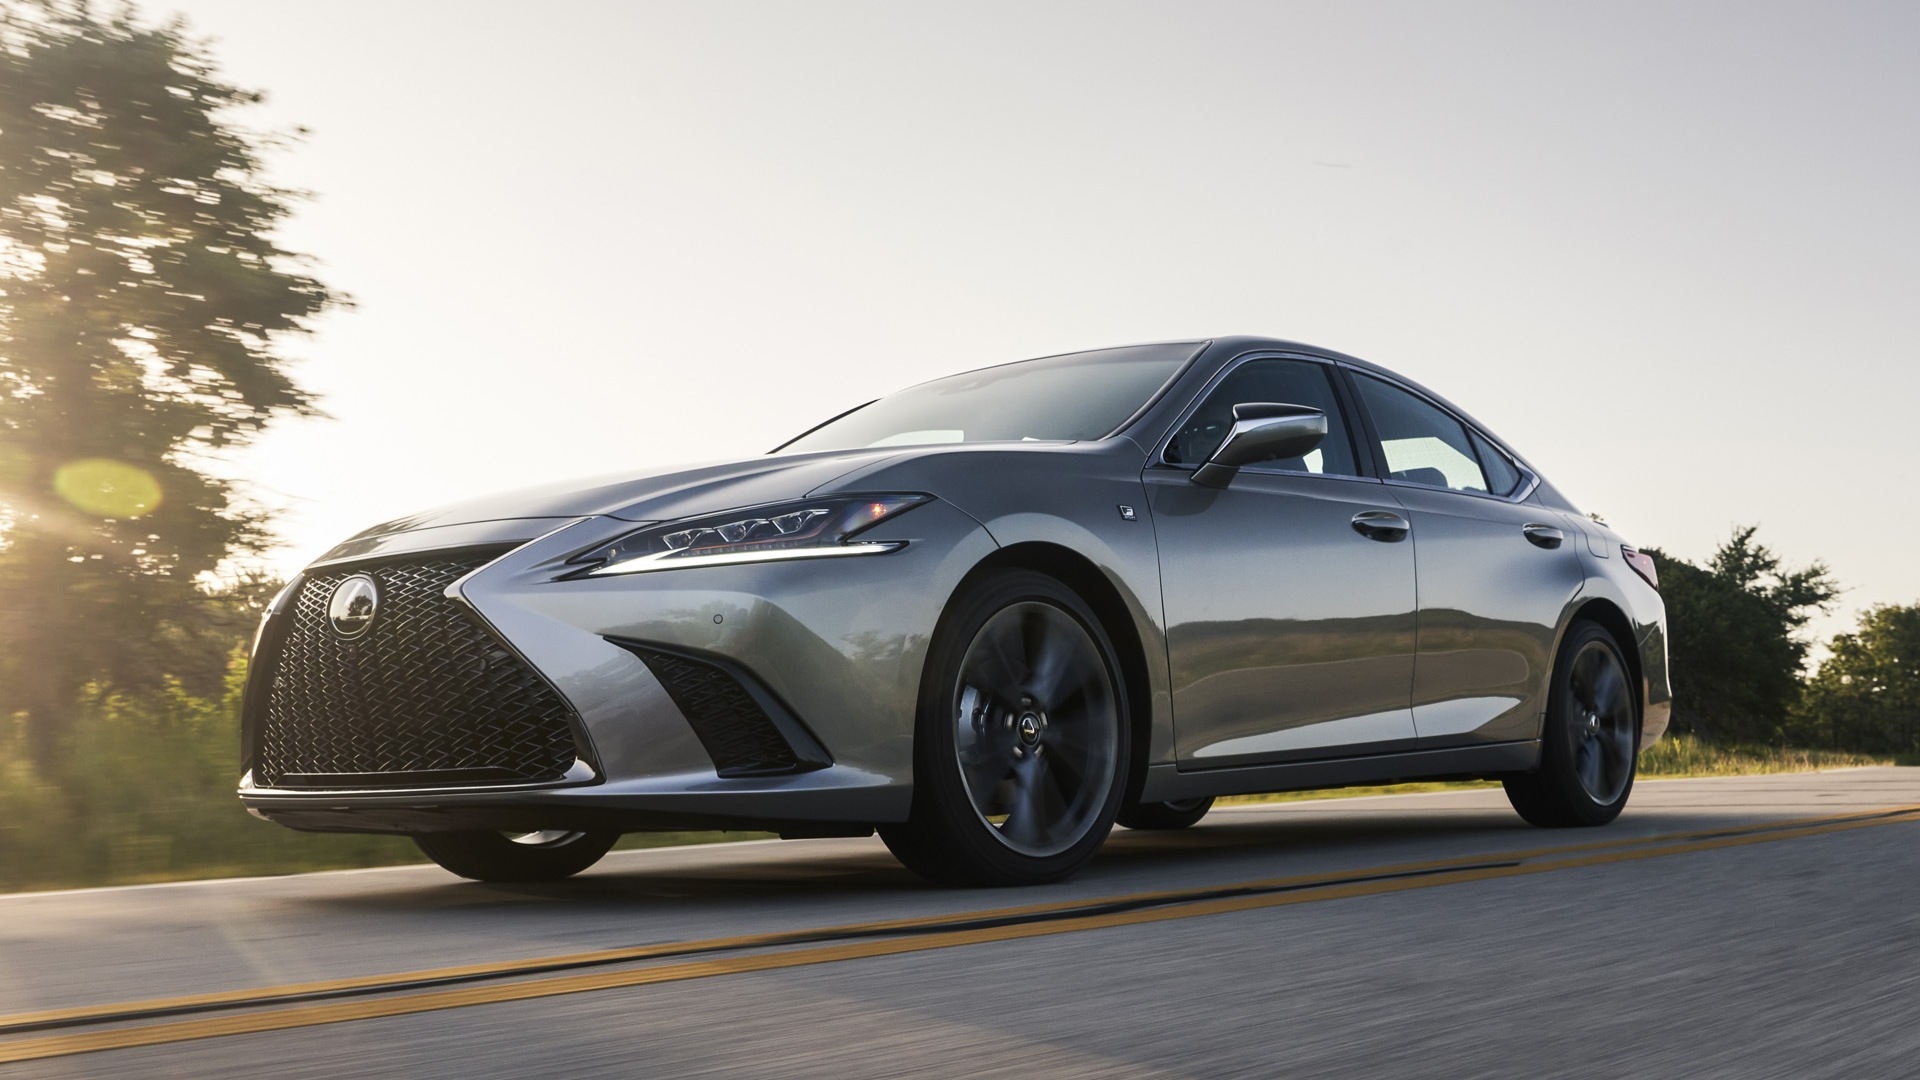 will 2021 lexus es have awd color, manual transmission